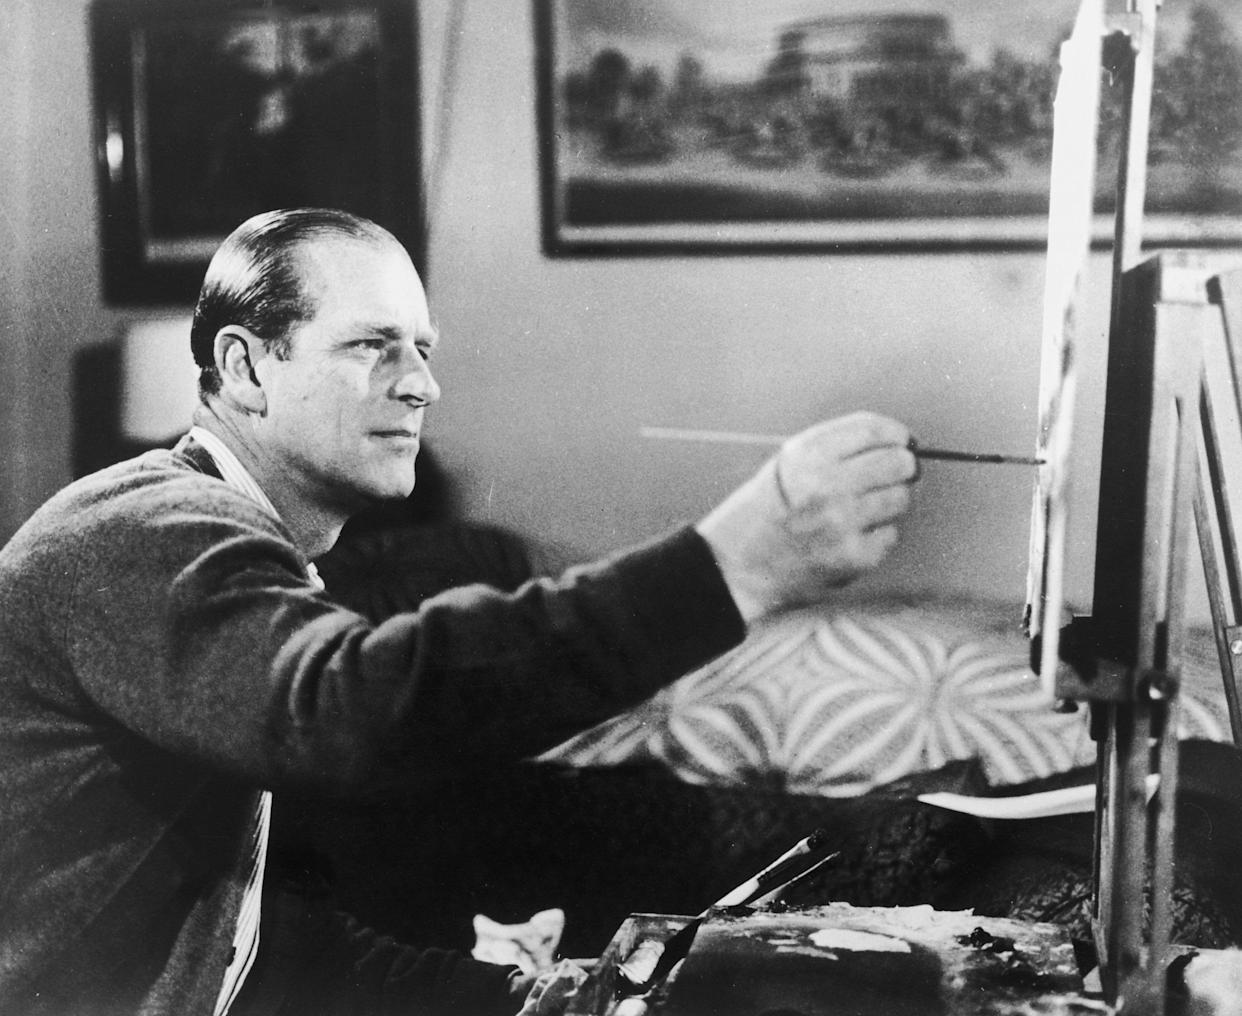 """Prince Philip at work on one of his hobbies, painting, on June 19, 1969, as seen in a scene from the documentary """"Royal Family."""" (Photo: Keystone/Hulton Archive/Getty Images)"""